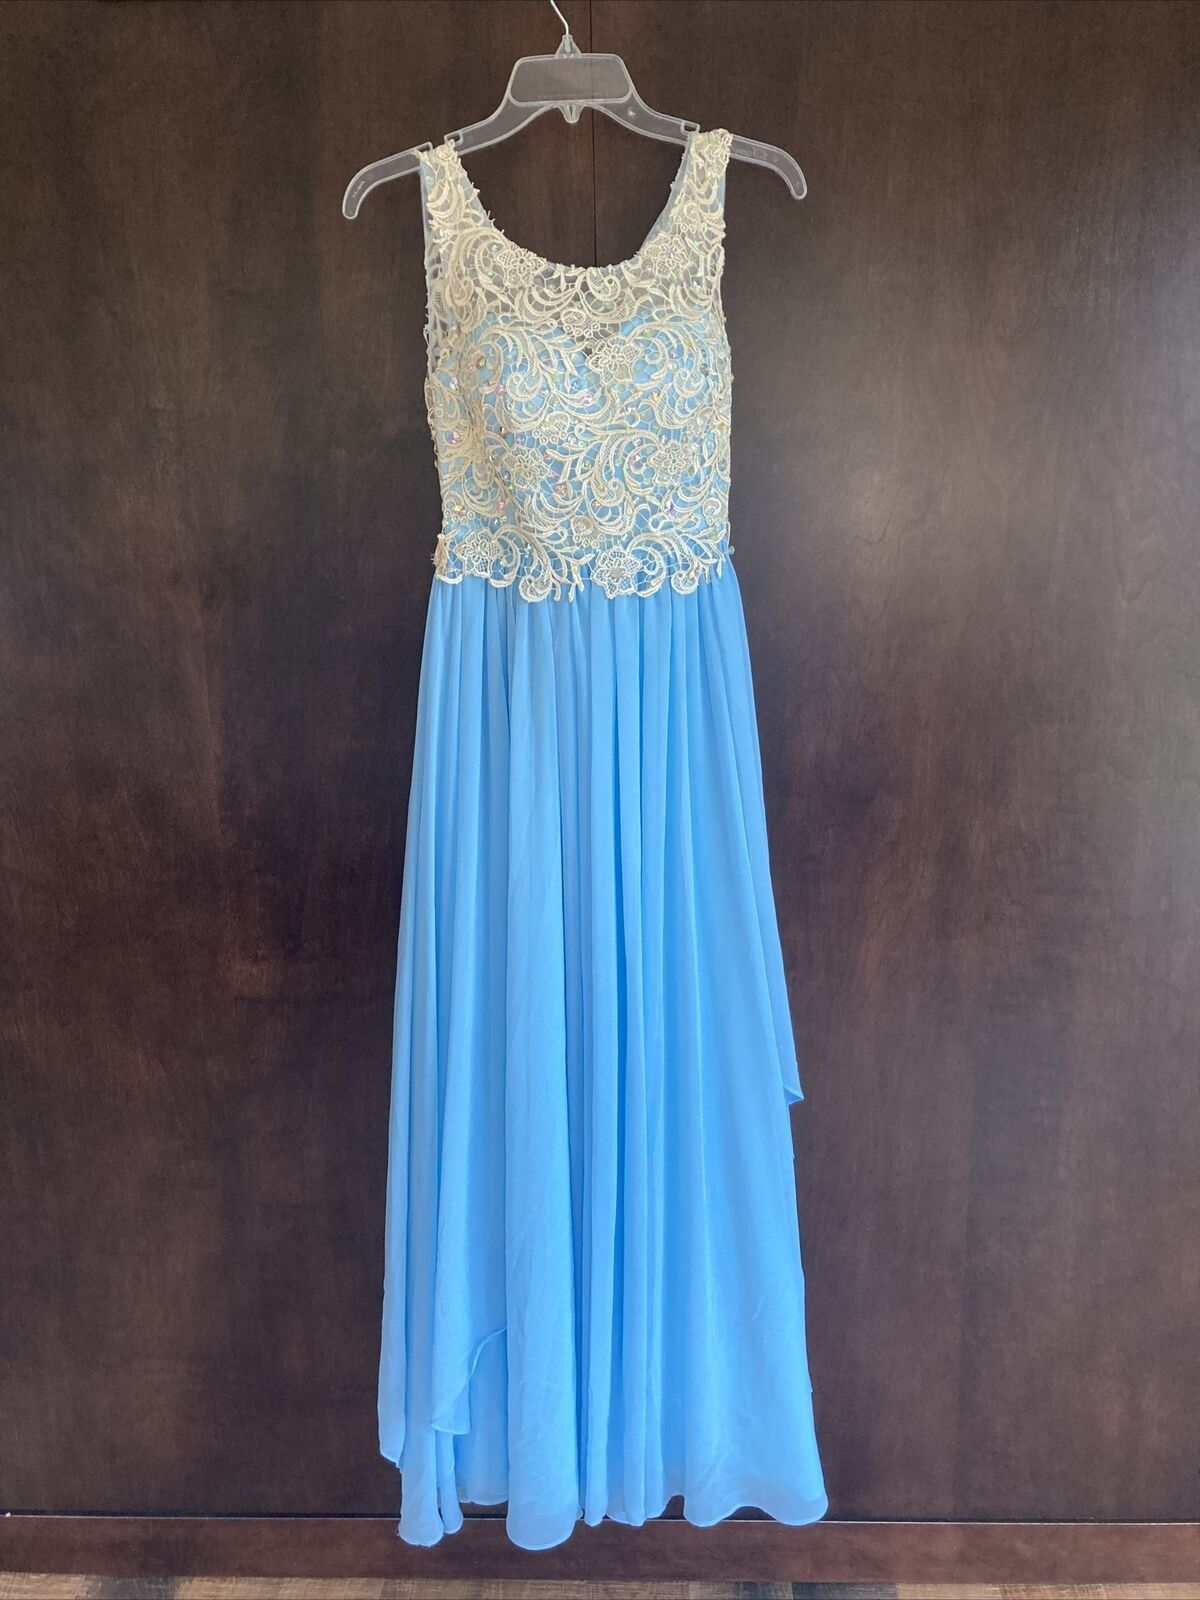 Hand-made Blue Prom/Pageant Dress with Lace and Jewels, Size 0